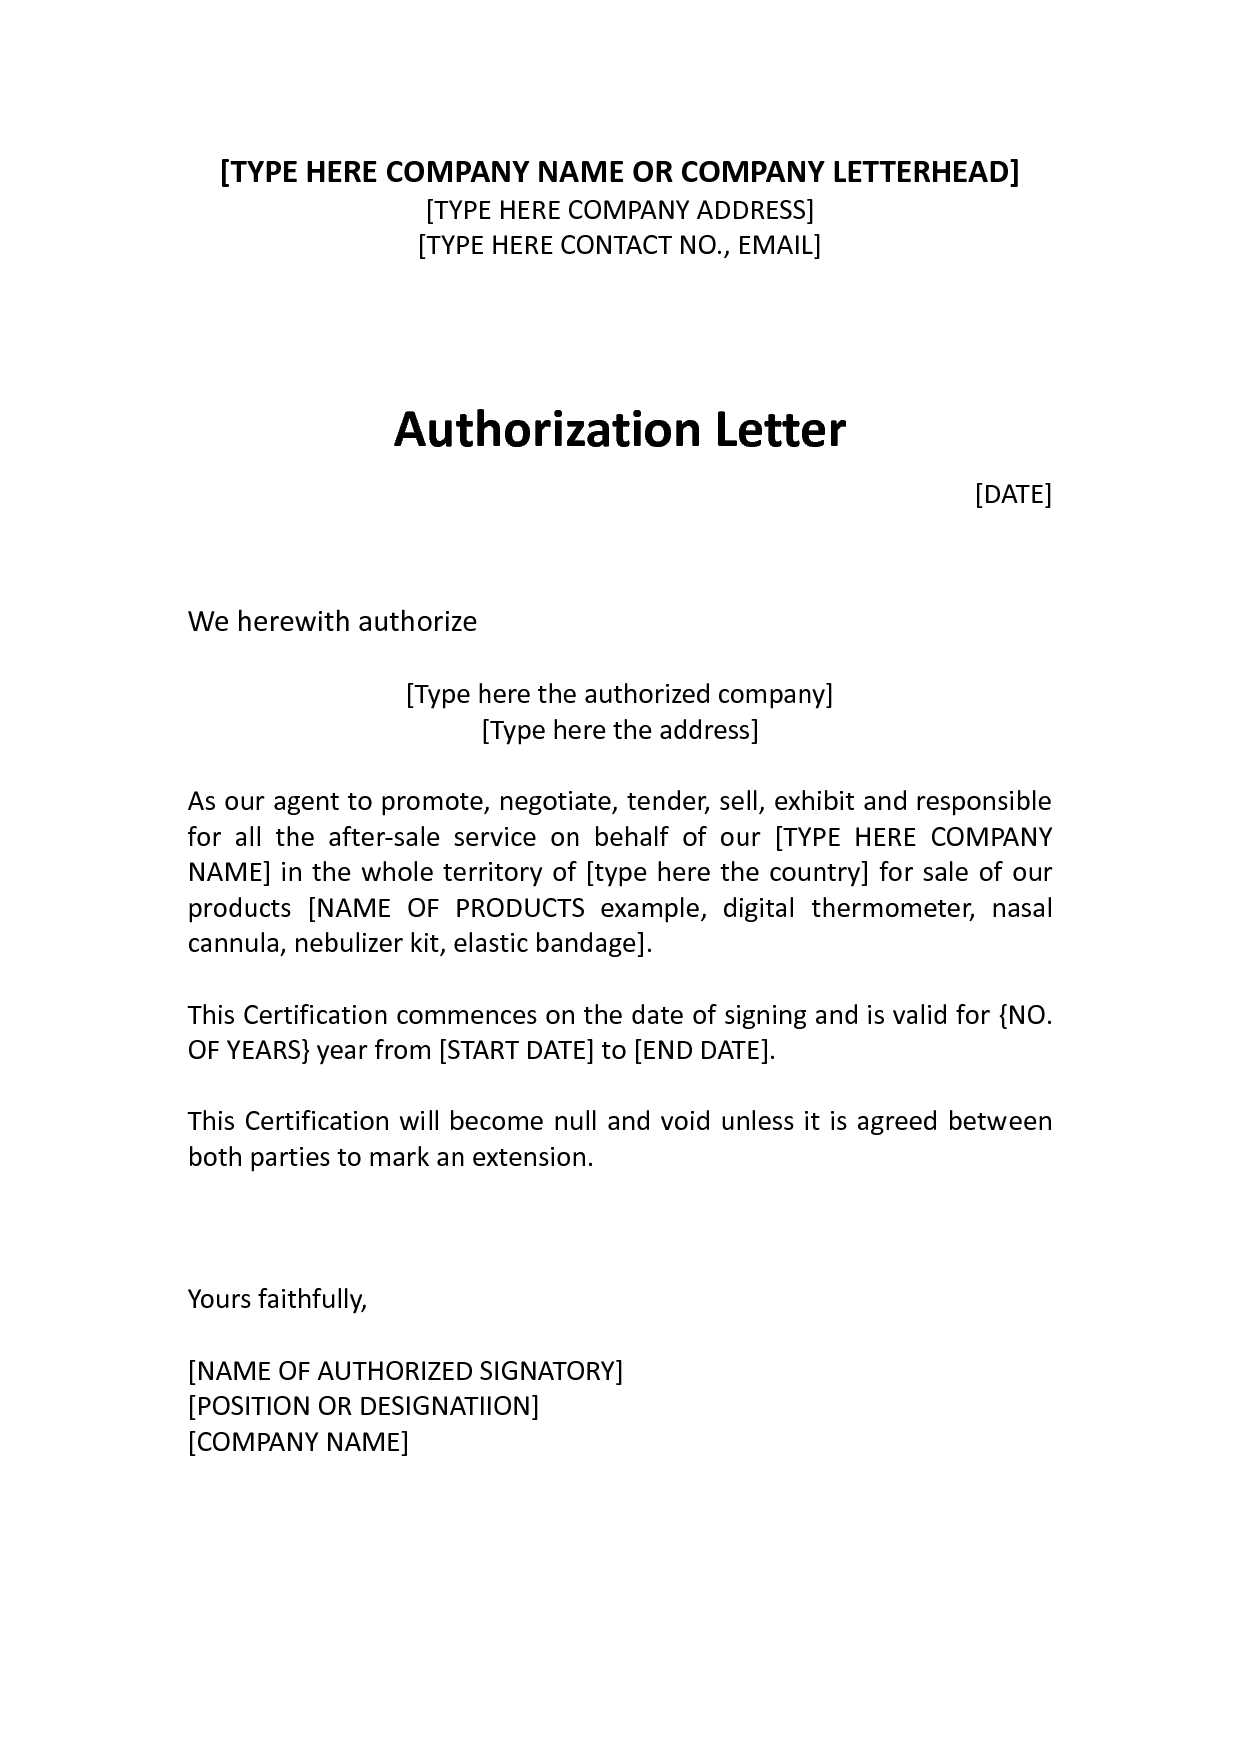 Car Donation Letter Template - Authorization Distributor Letter Sample Distributor Dealer